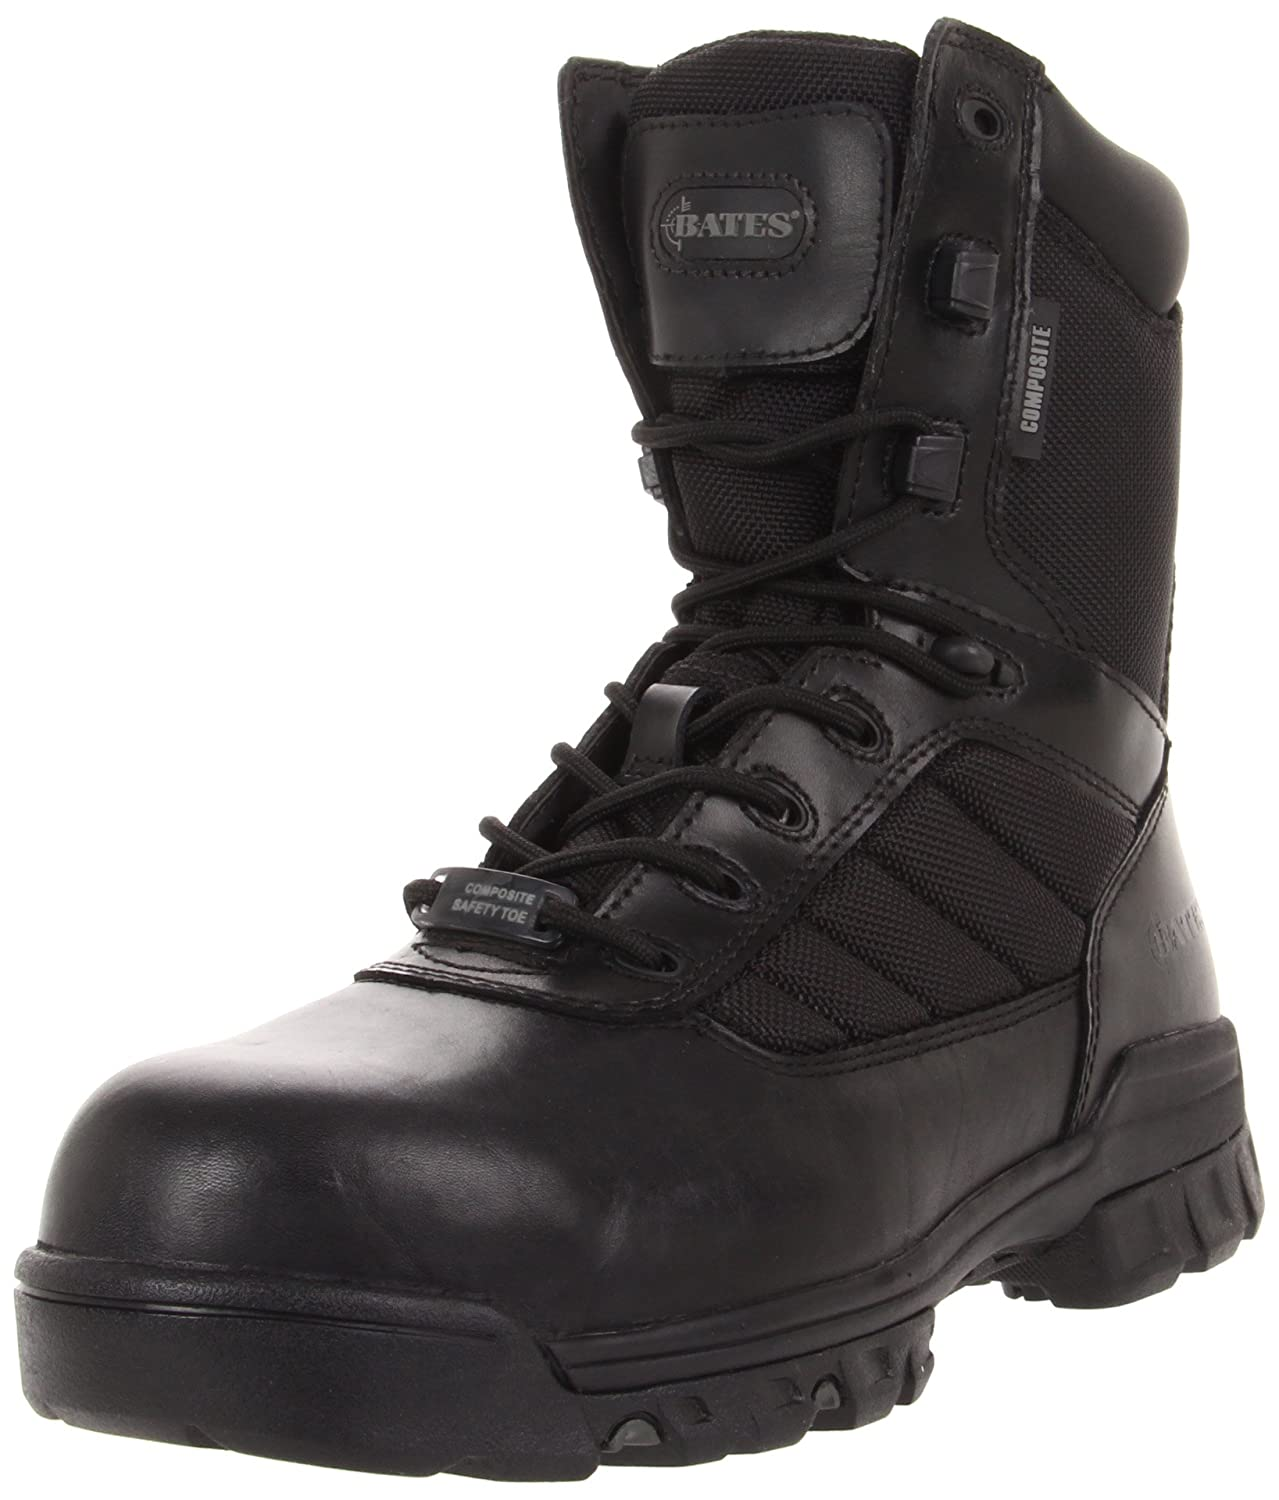 Schwarz Bates Mens Tactical Sport 8 inch Safety Toe Leather Stiefel